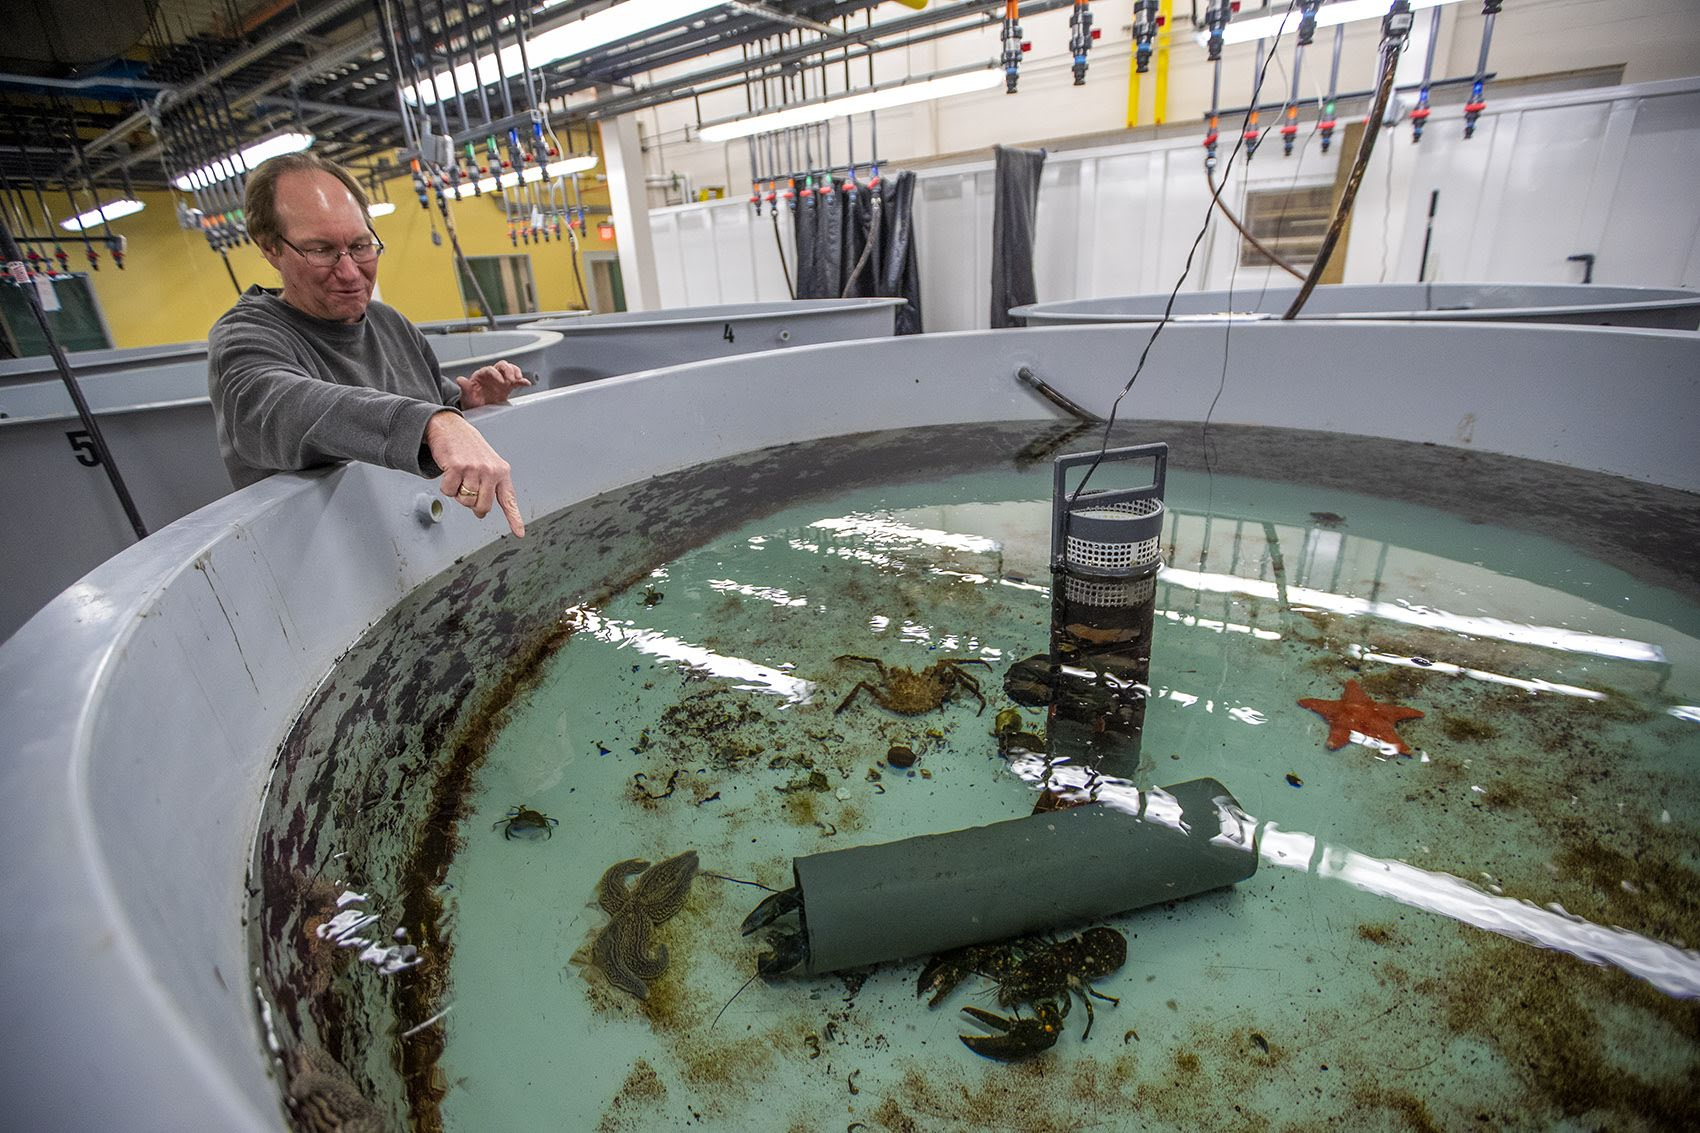 Lead researcher Kevin Stokesbury points at shellfish in a tank at a testing facility at the UMass Dartmouth Oceanography Operations Lab at the Mass. Division of Marine Fisheries. (Jesse Costa/WBUR)